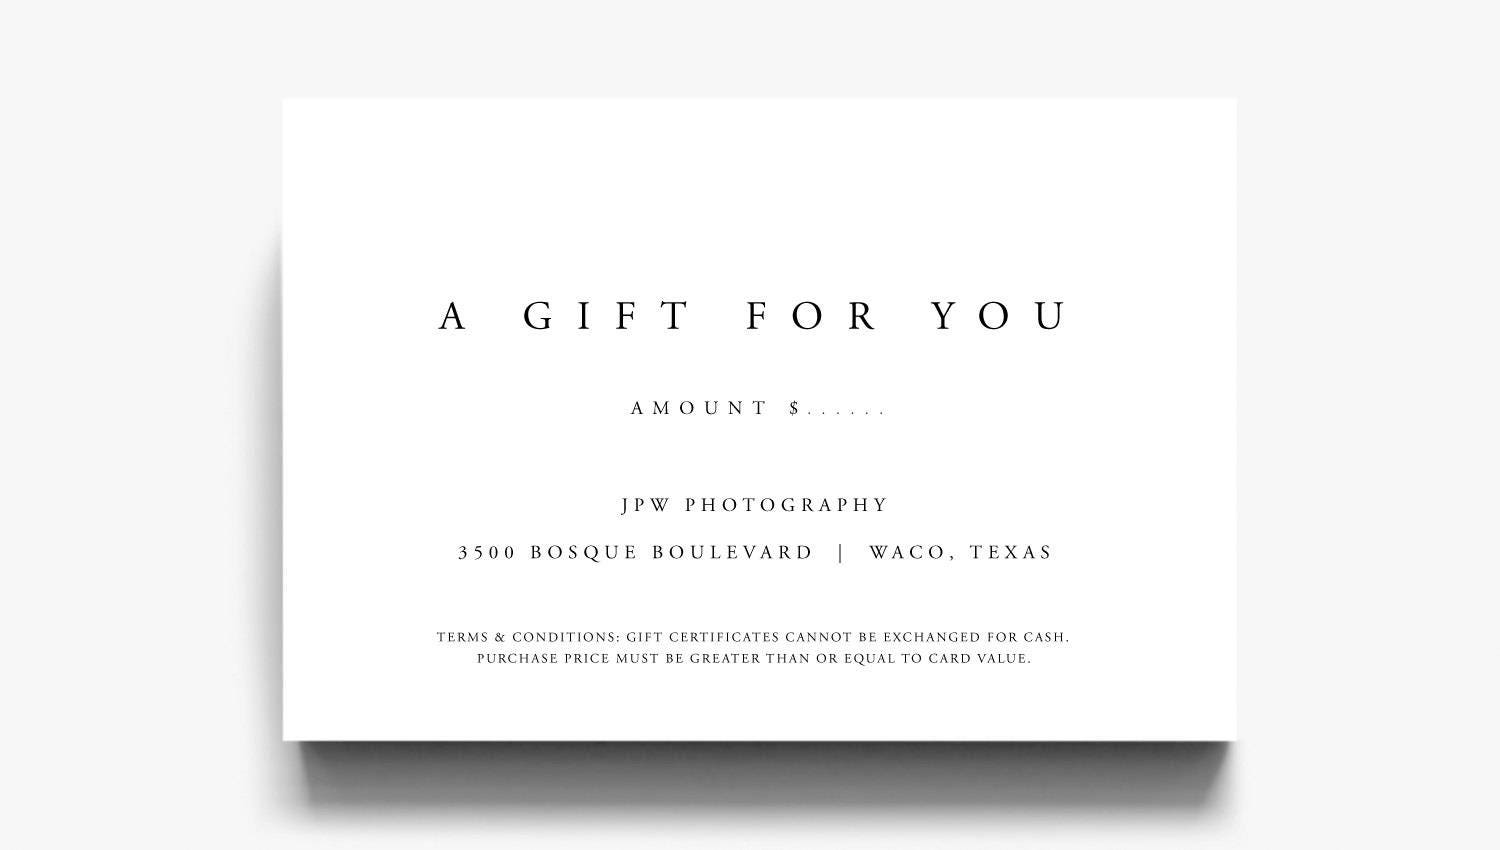 gift certificate terms and conditions template - gift certificate template a gift for you gift voucher